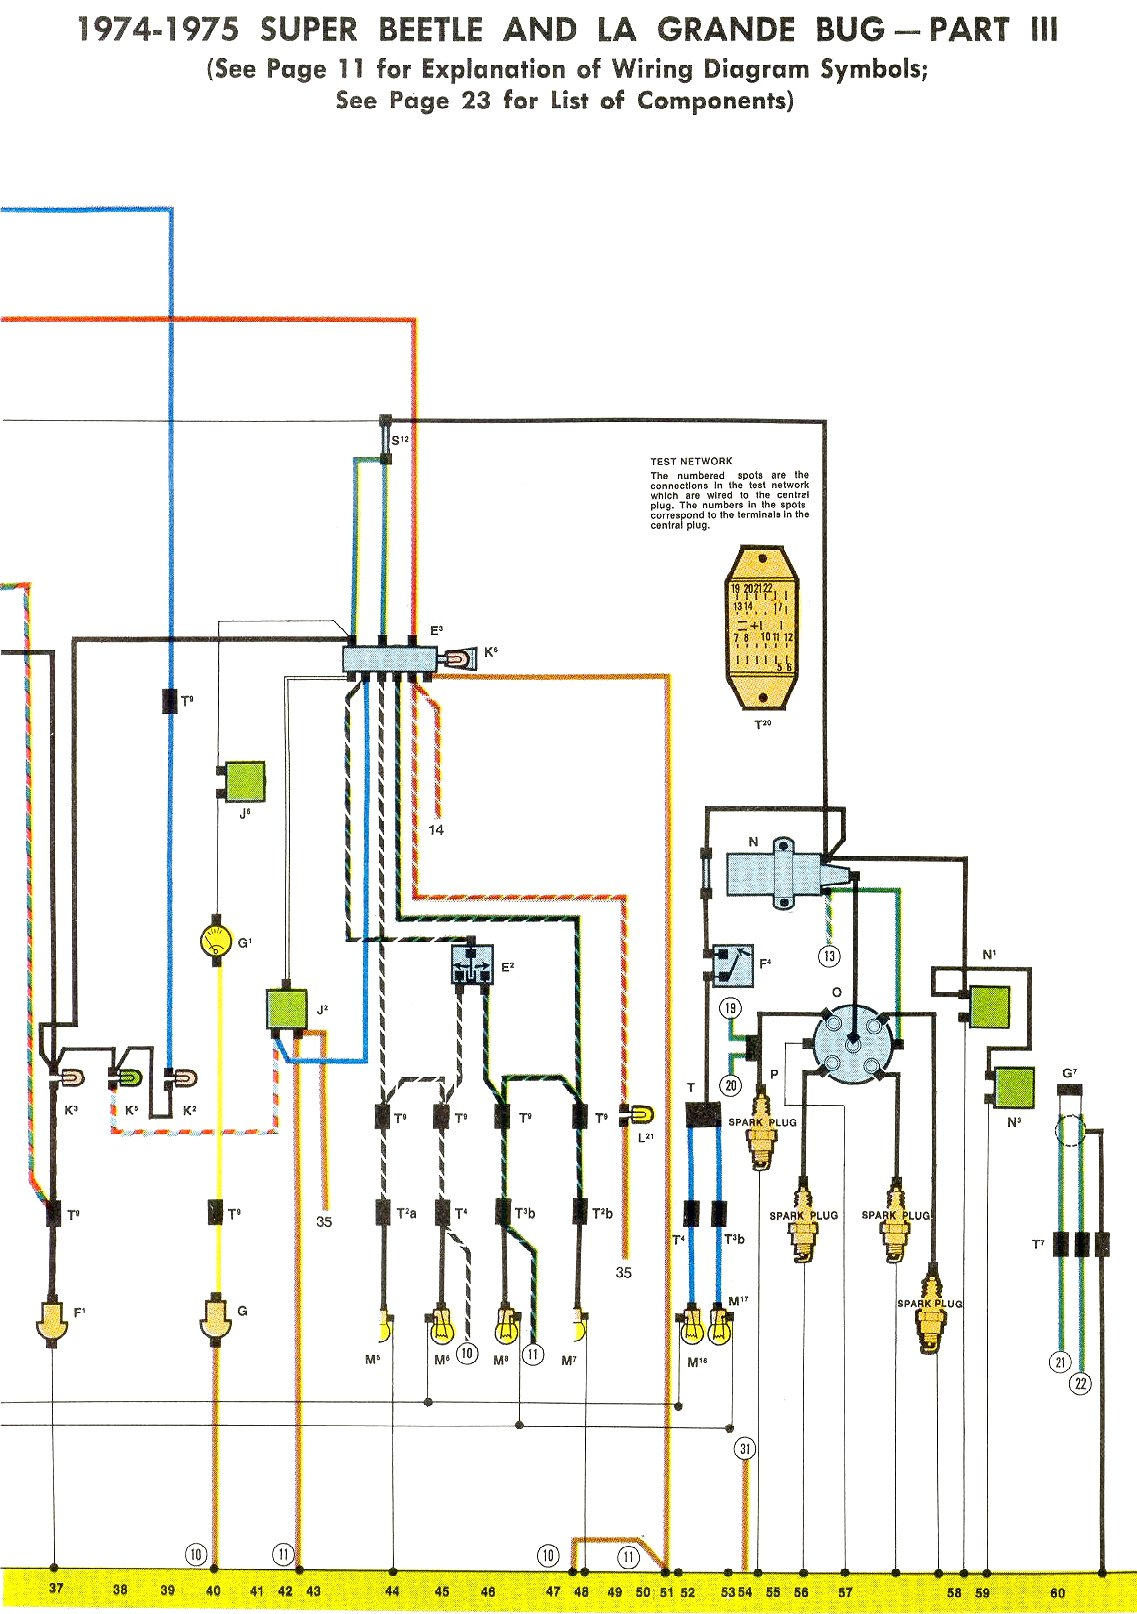 Swell 74 Vw Beetle Wiring Diagram Wiring Library Vw Trailer Wiring Wiring Cloud Hisonuggs Outletorg